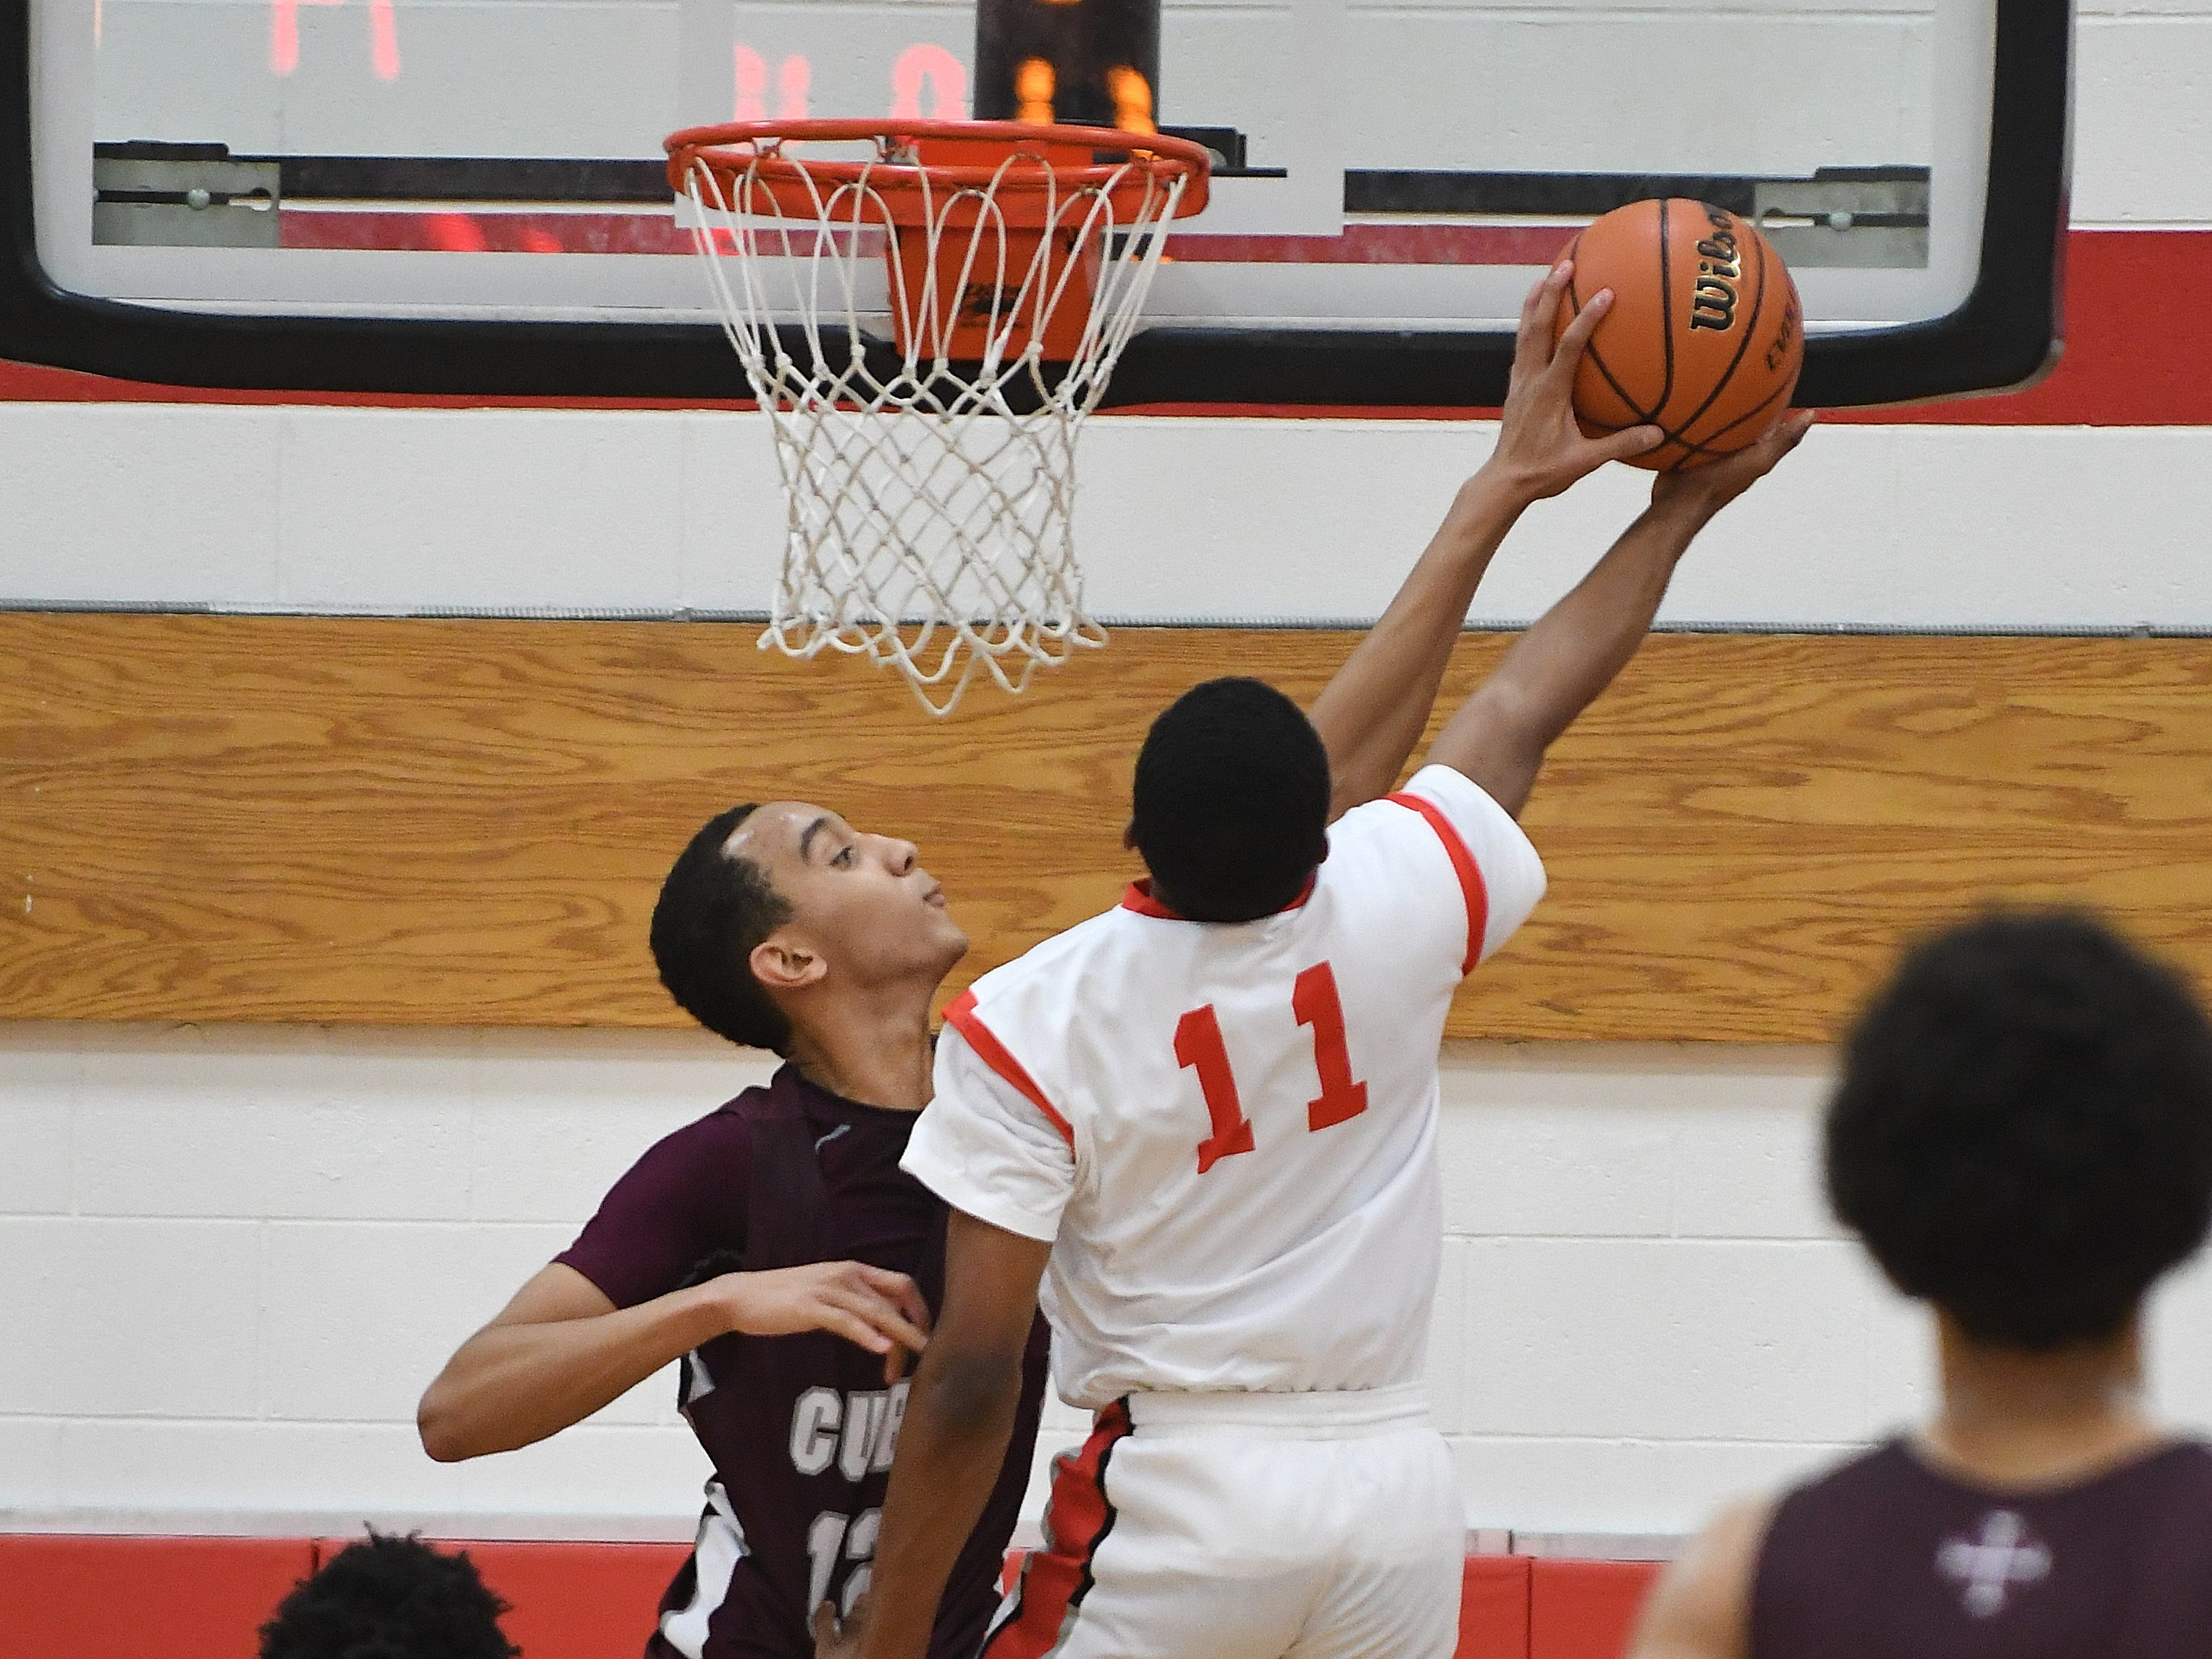 U-D Jesuit's J.T. Morgan blocks a shot by Lorne Bowman II of Orchard Lake St. Mary's in the first half.